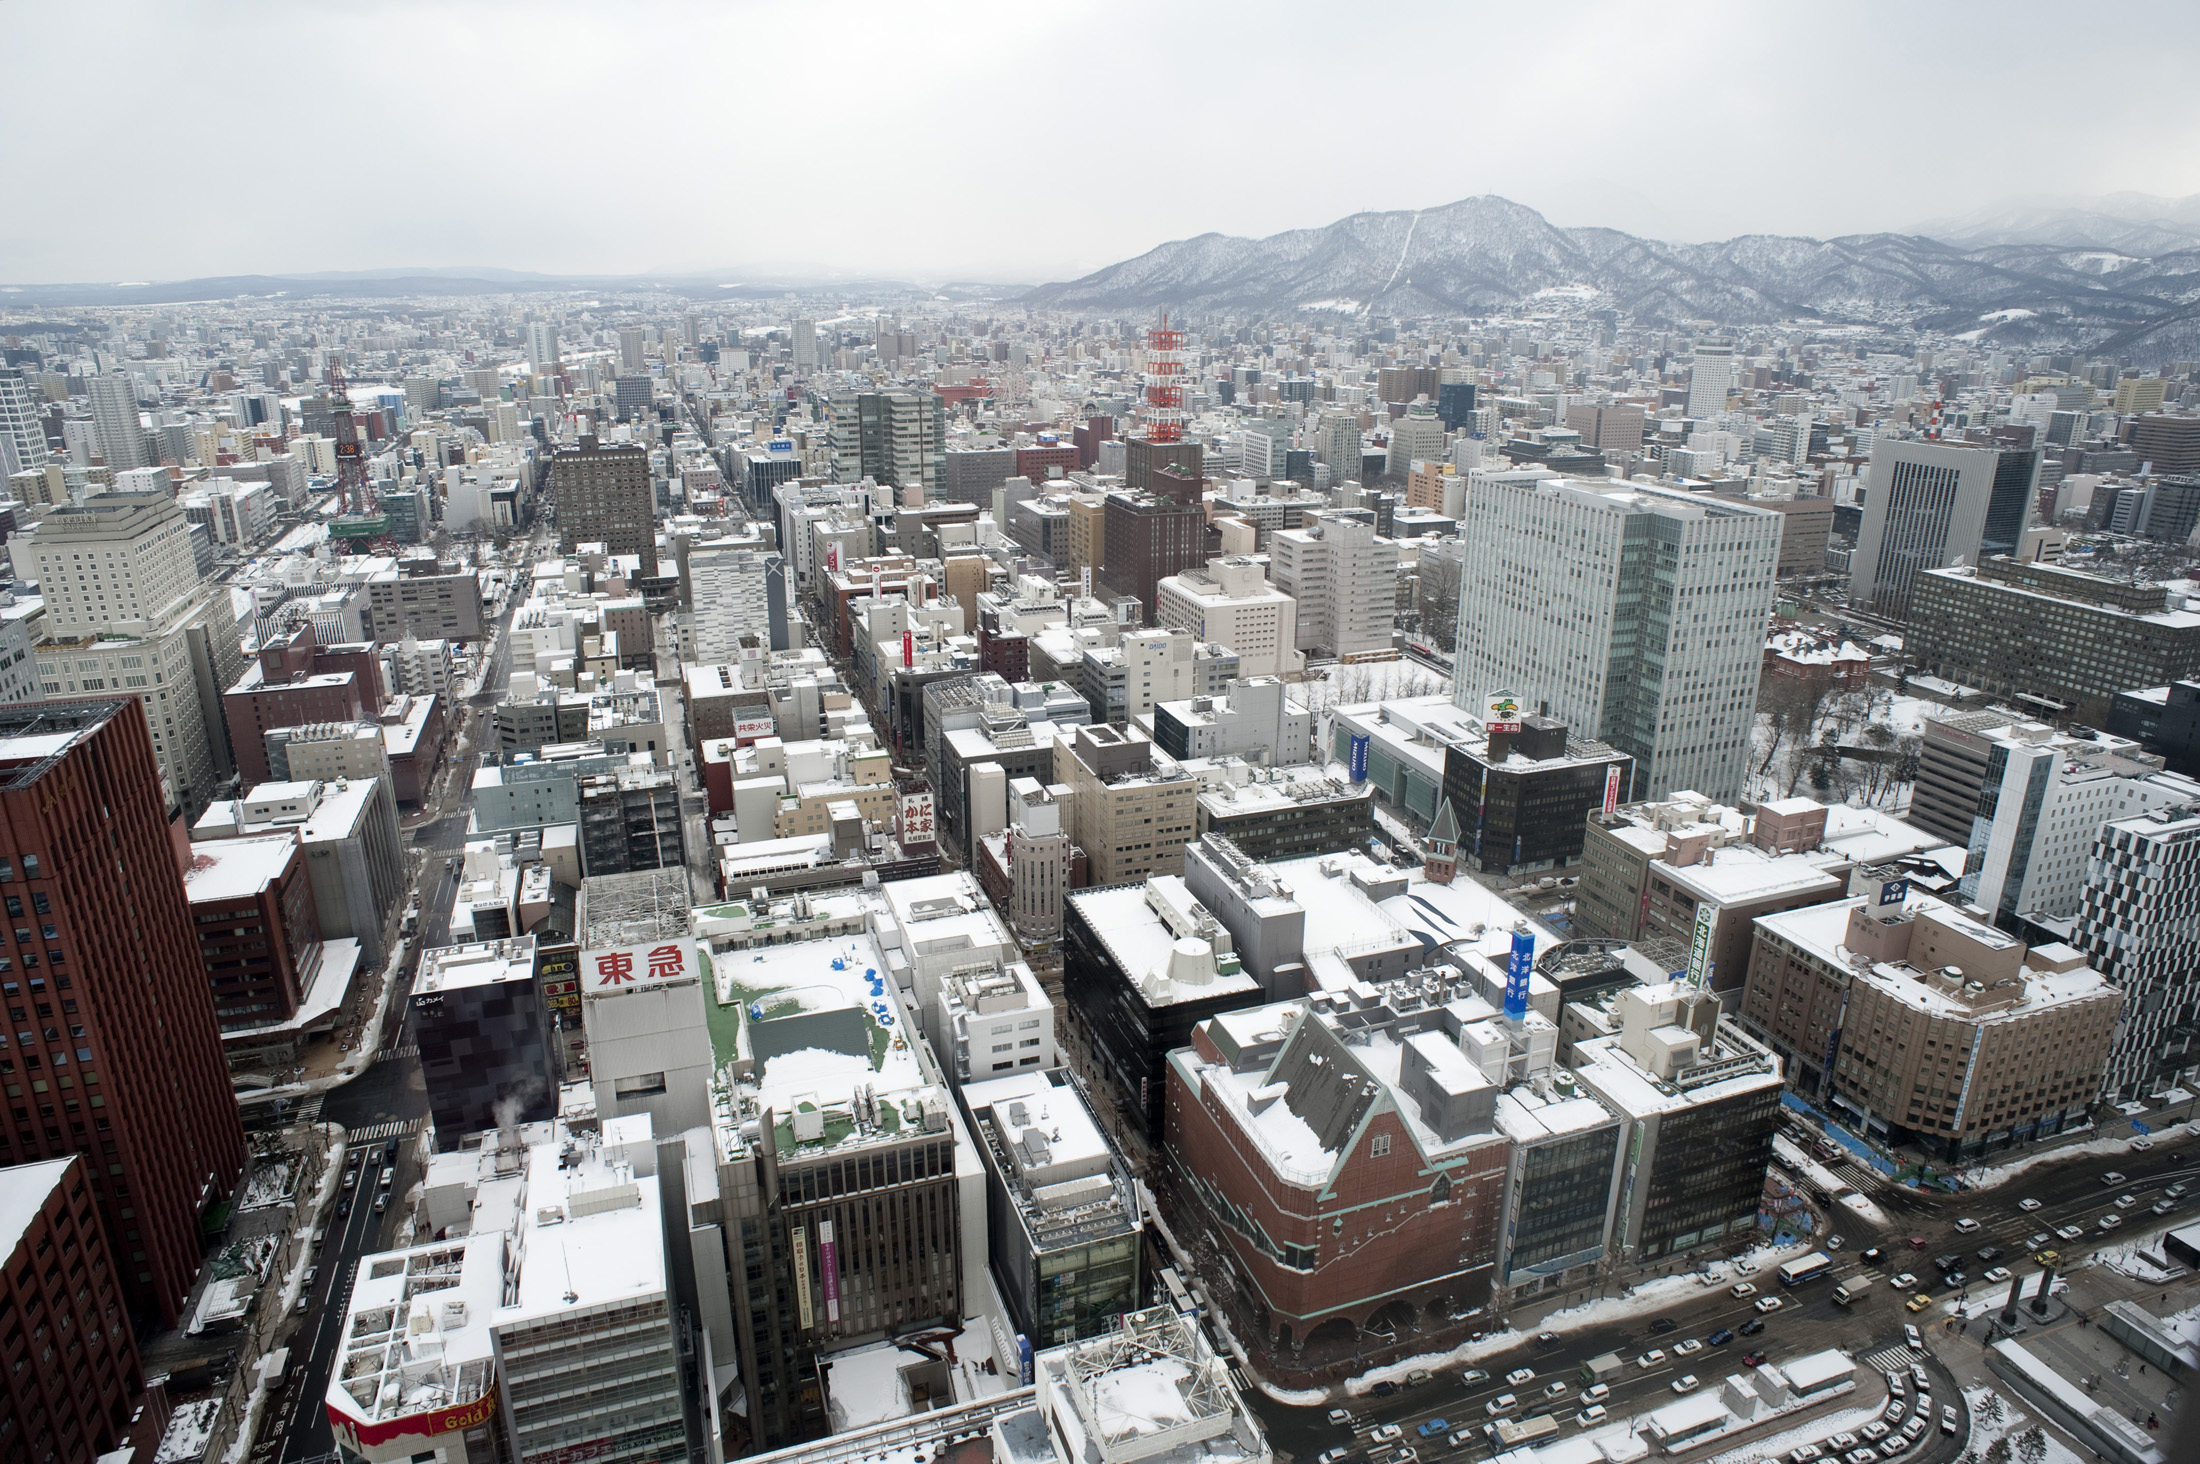 Arial view of Sapporo as viewed from the JR tower in winter